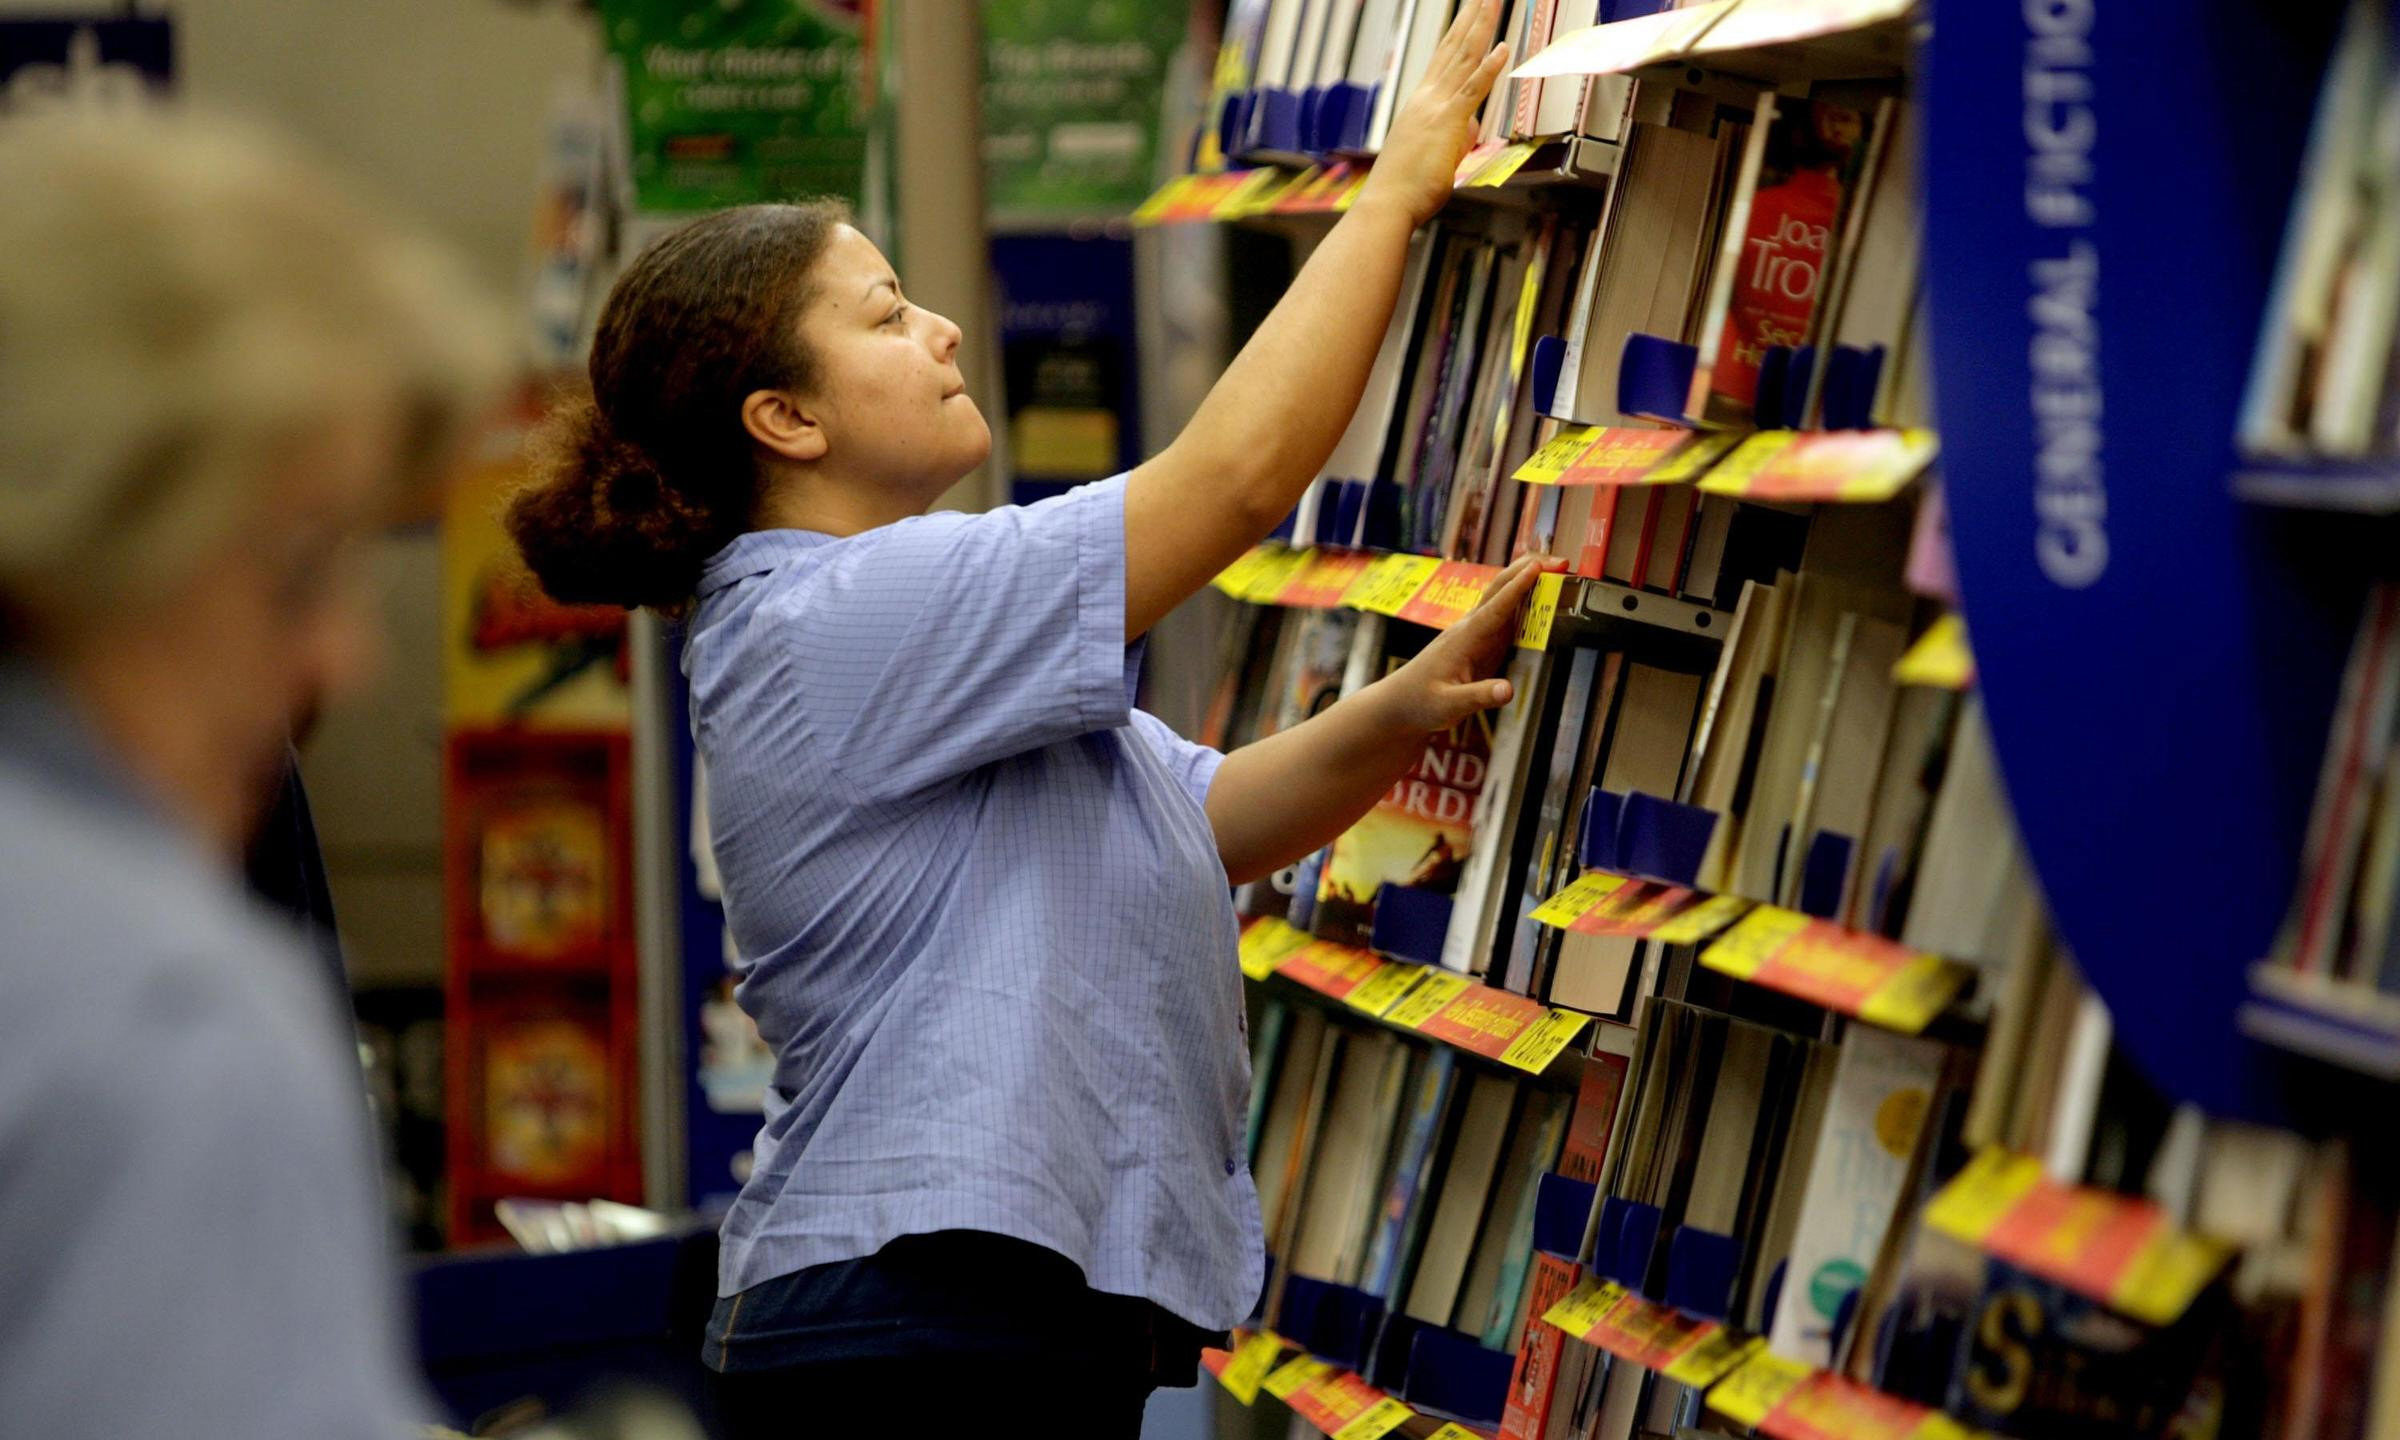 A WH Smith employee at work